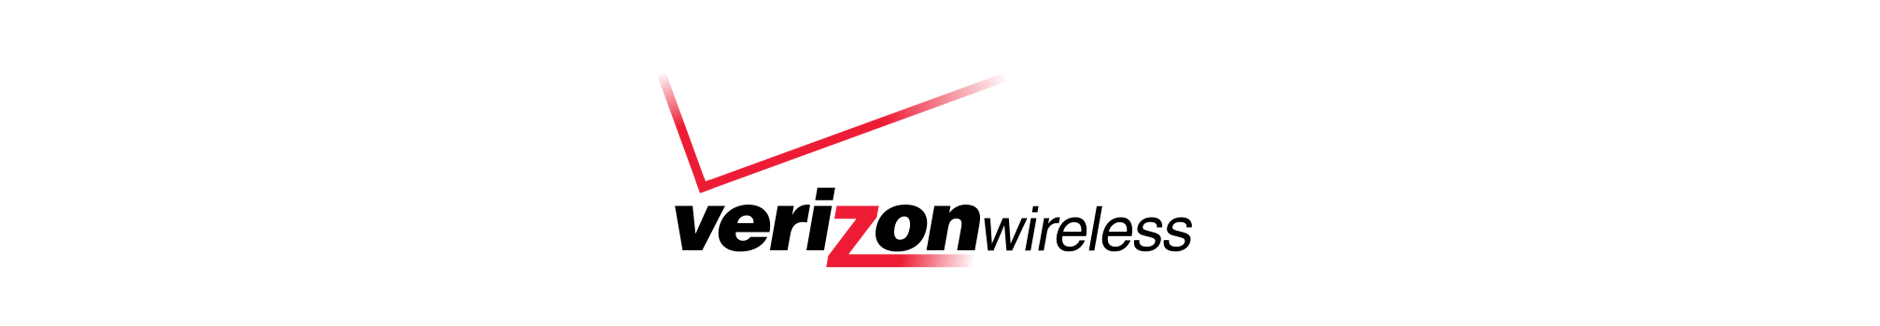 verizon logo design